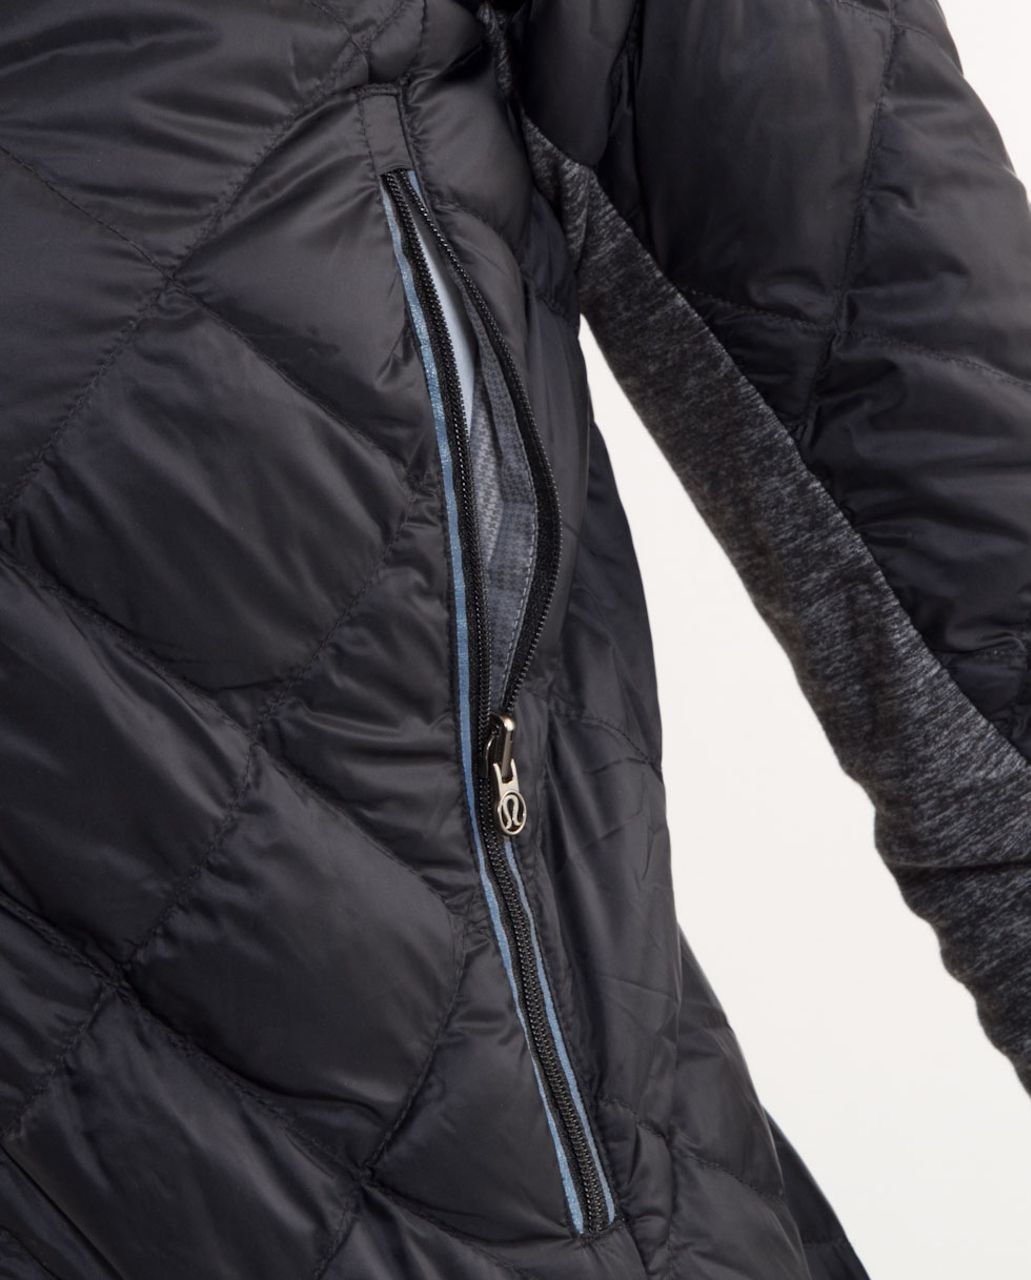 Lululemon Run:  Turn Around Jacket - Black /  Grey Houndstooth